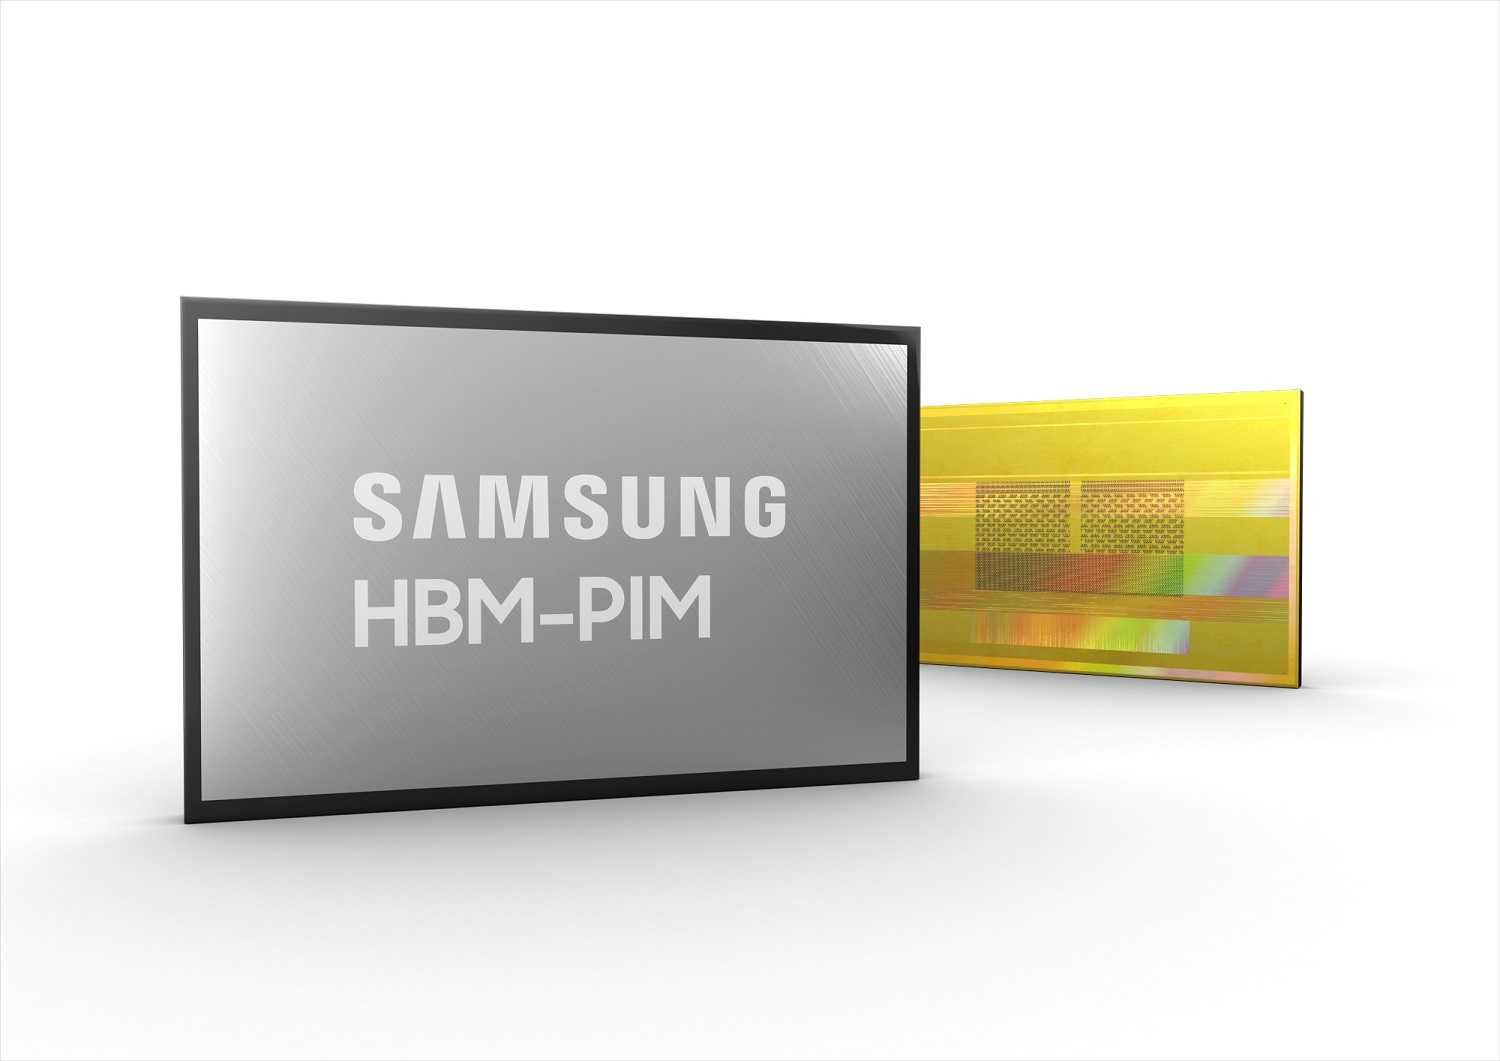 Samsung Develops HBM-PIM, Industry's First High Bandwidth Memory with AI Processing Power